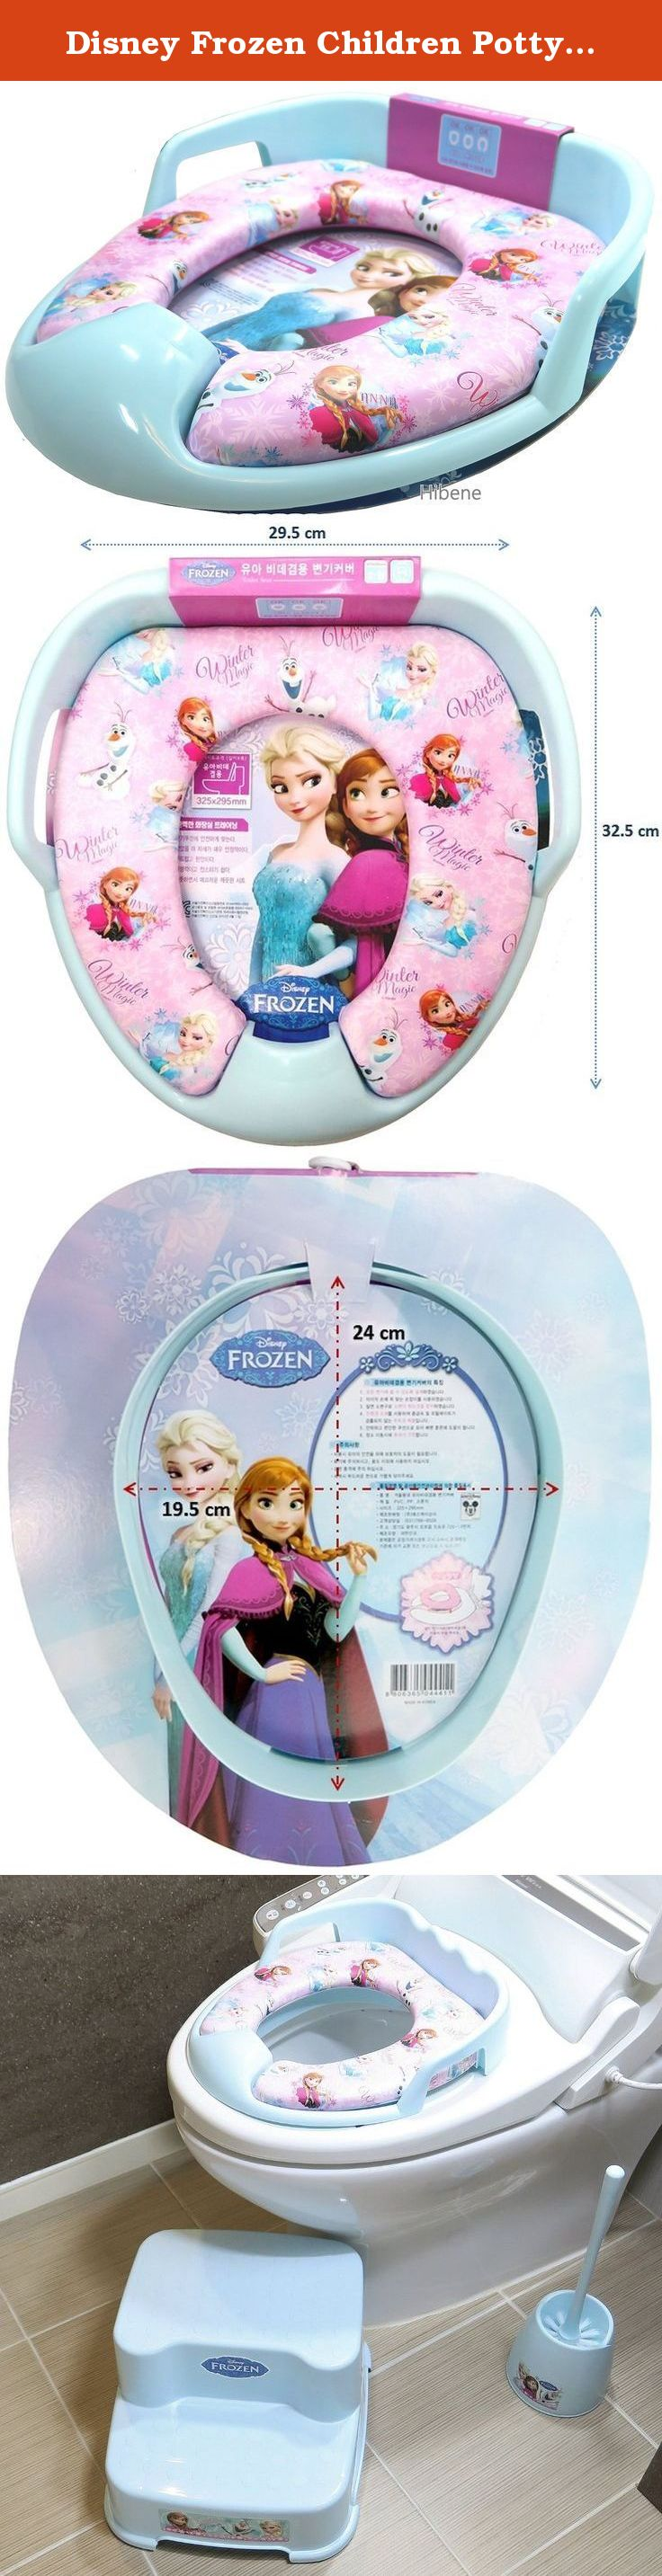 Disney Frozen Children Potty Soft Toilet Training Seat Cover Whether It S At Home Or On